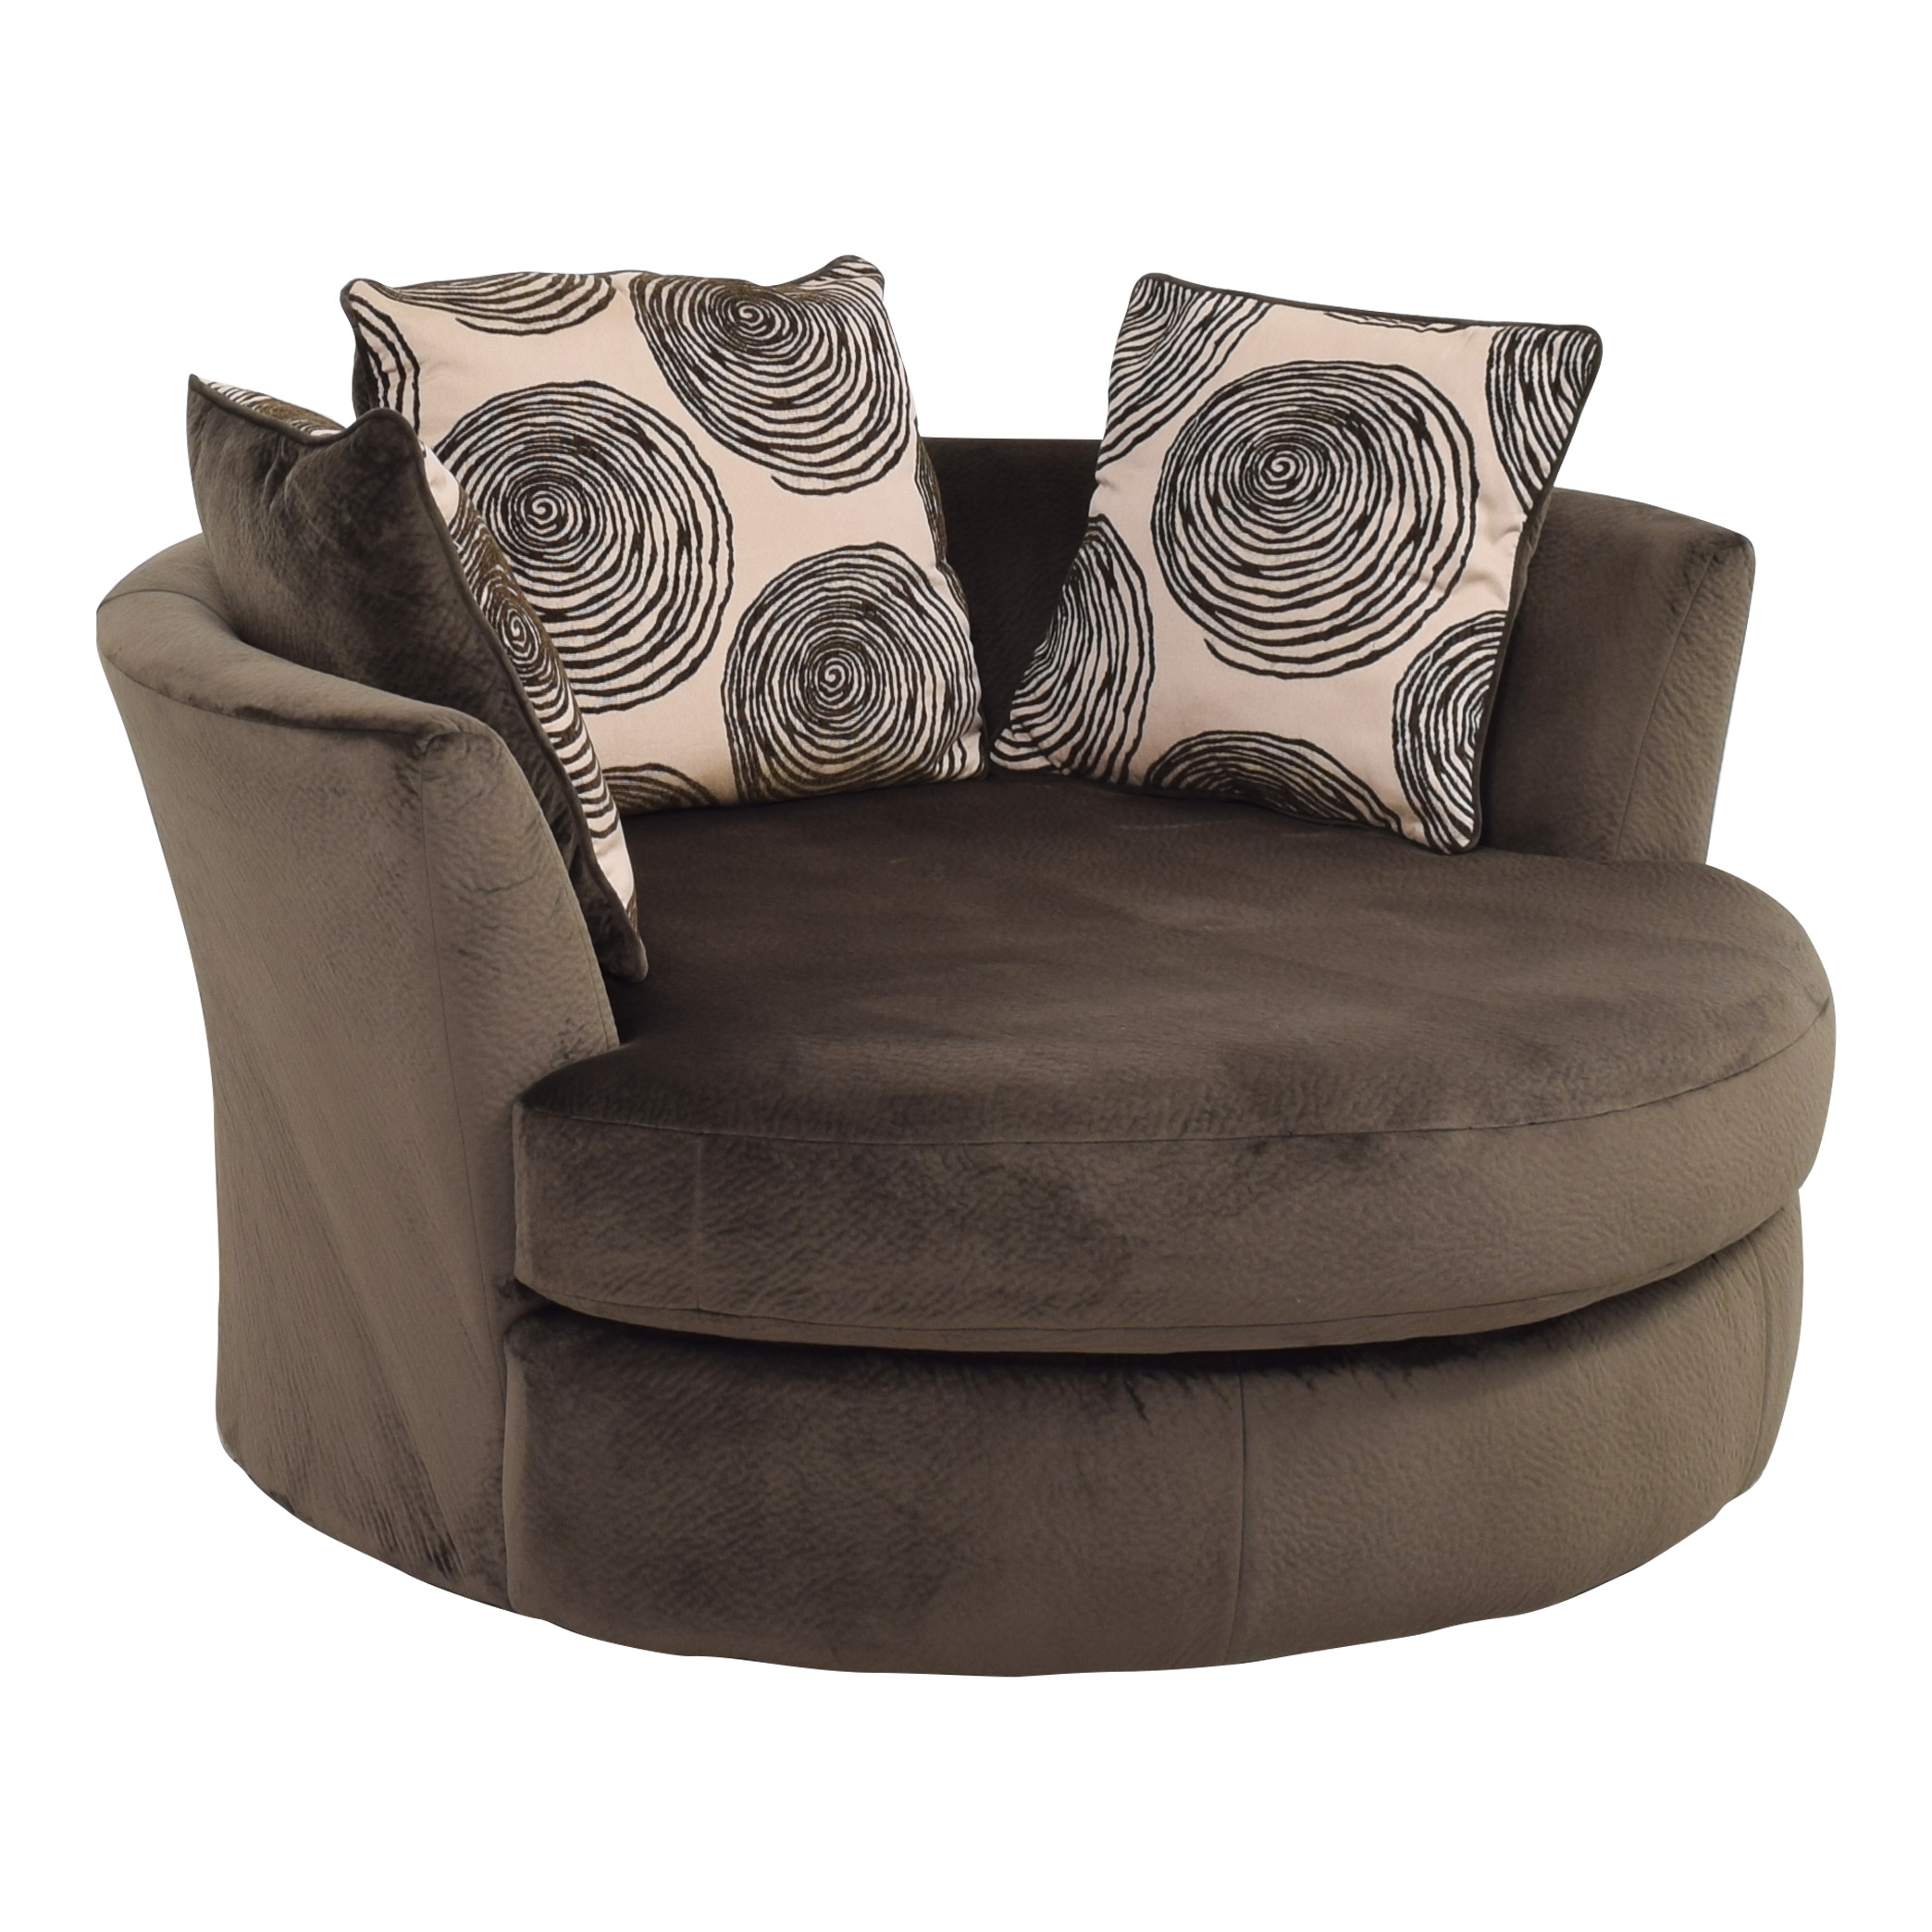 shop Albany Industries Albany Industries Groovy Swivel Chair online